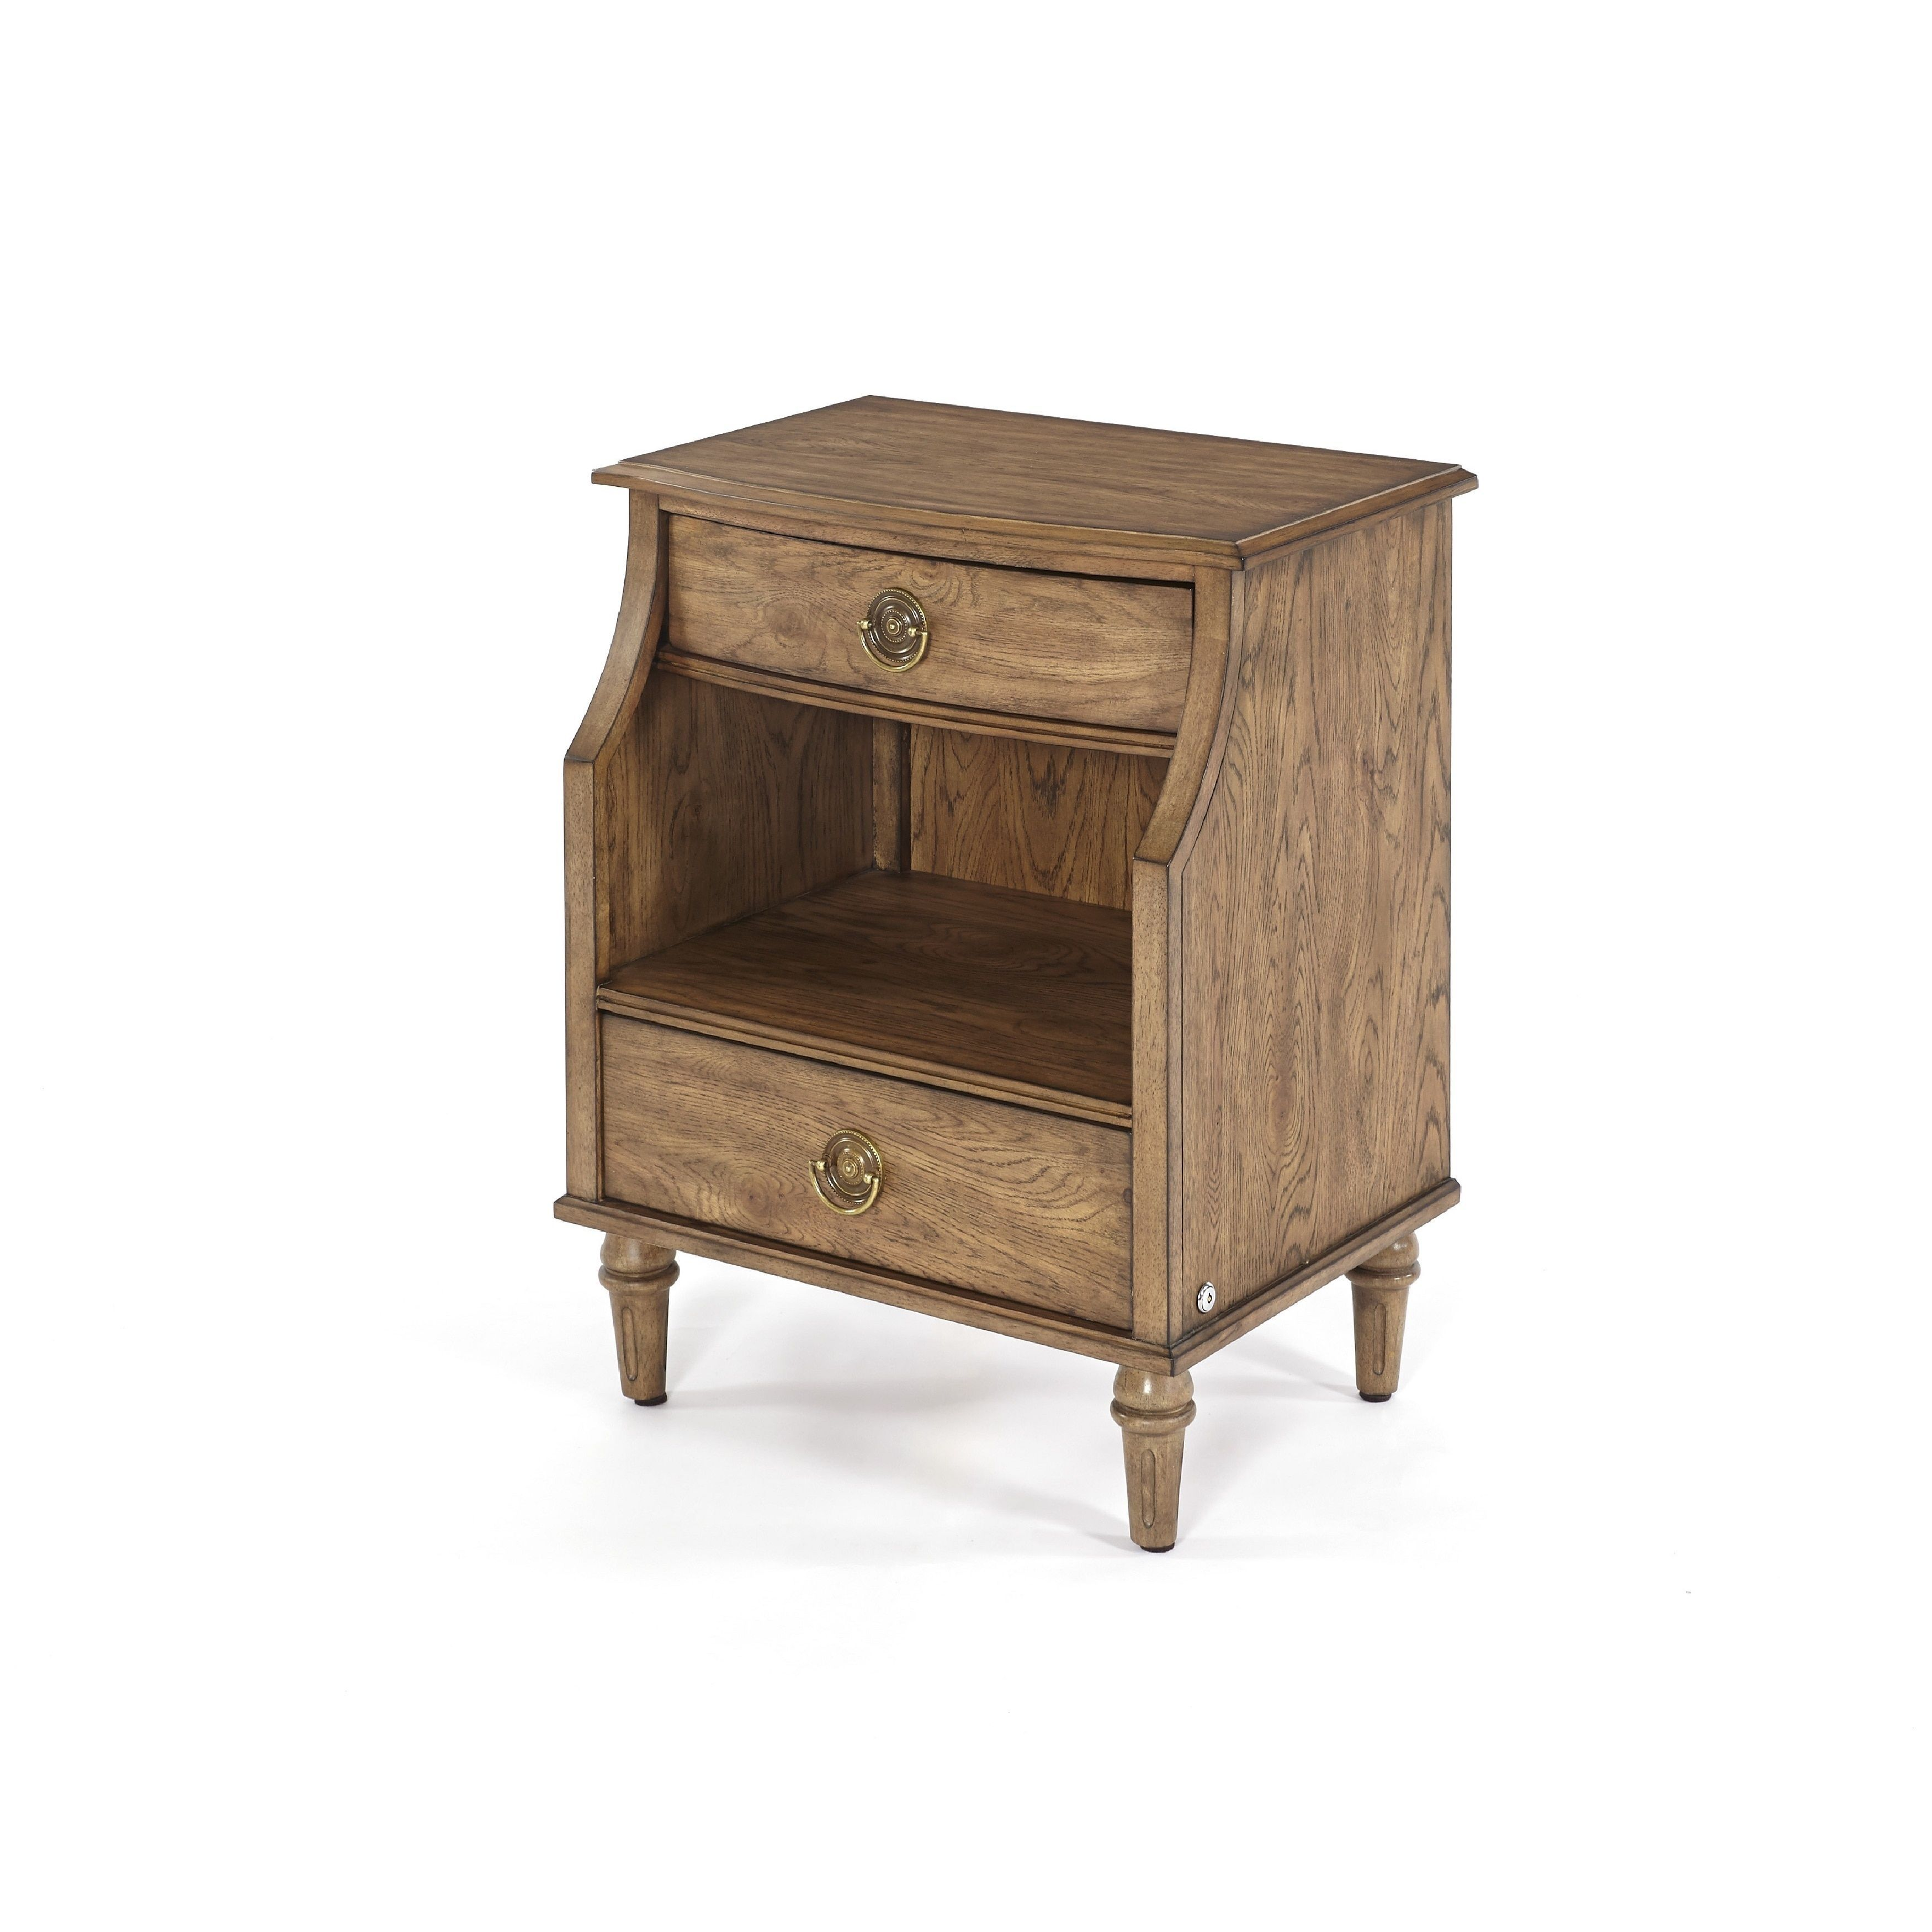 Progressive Standing Room Only Distressed 2 Drawer Nightstand Toffee Finish Brown